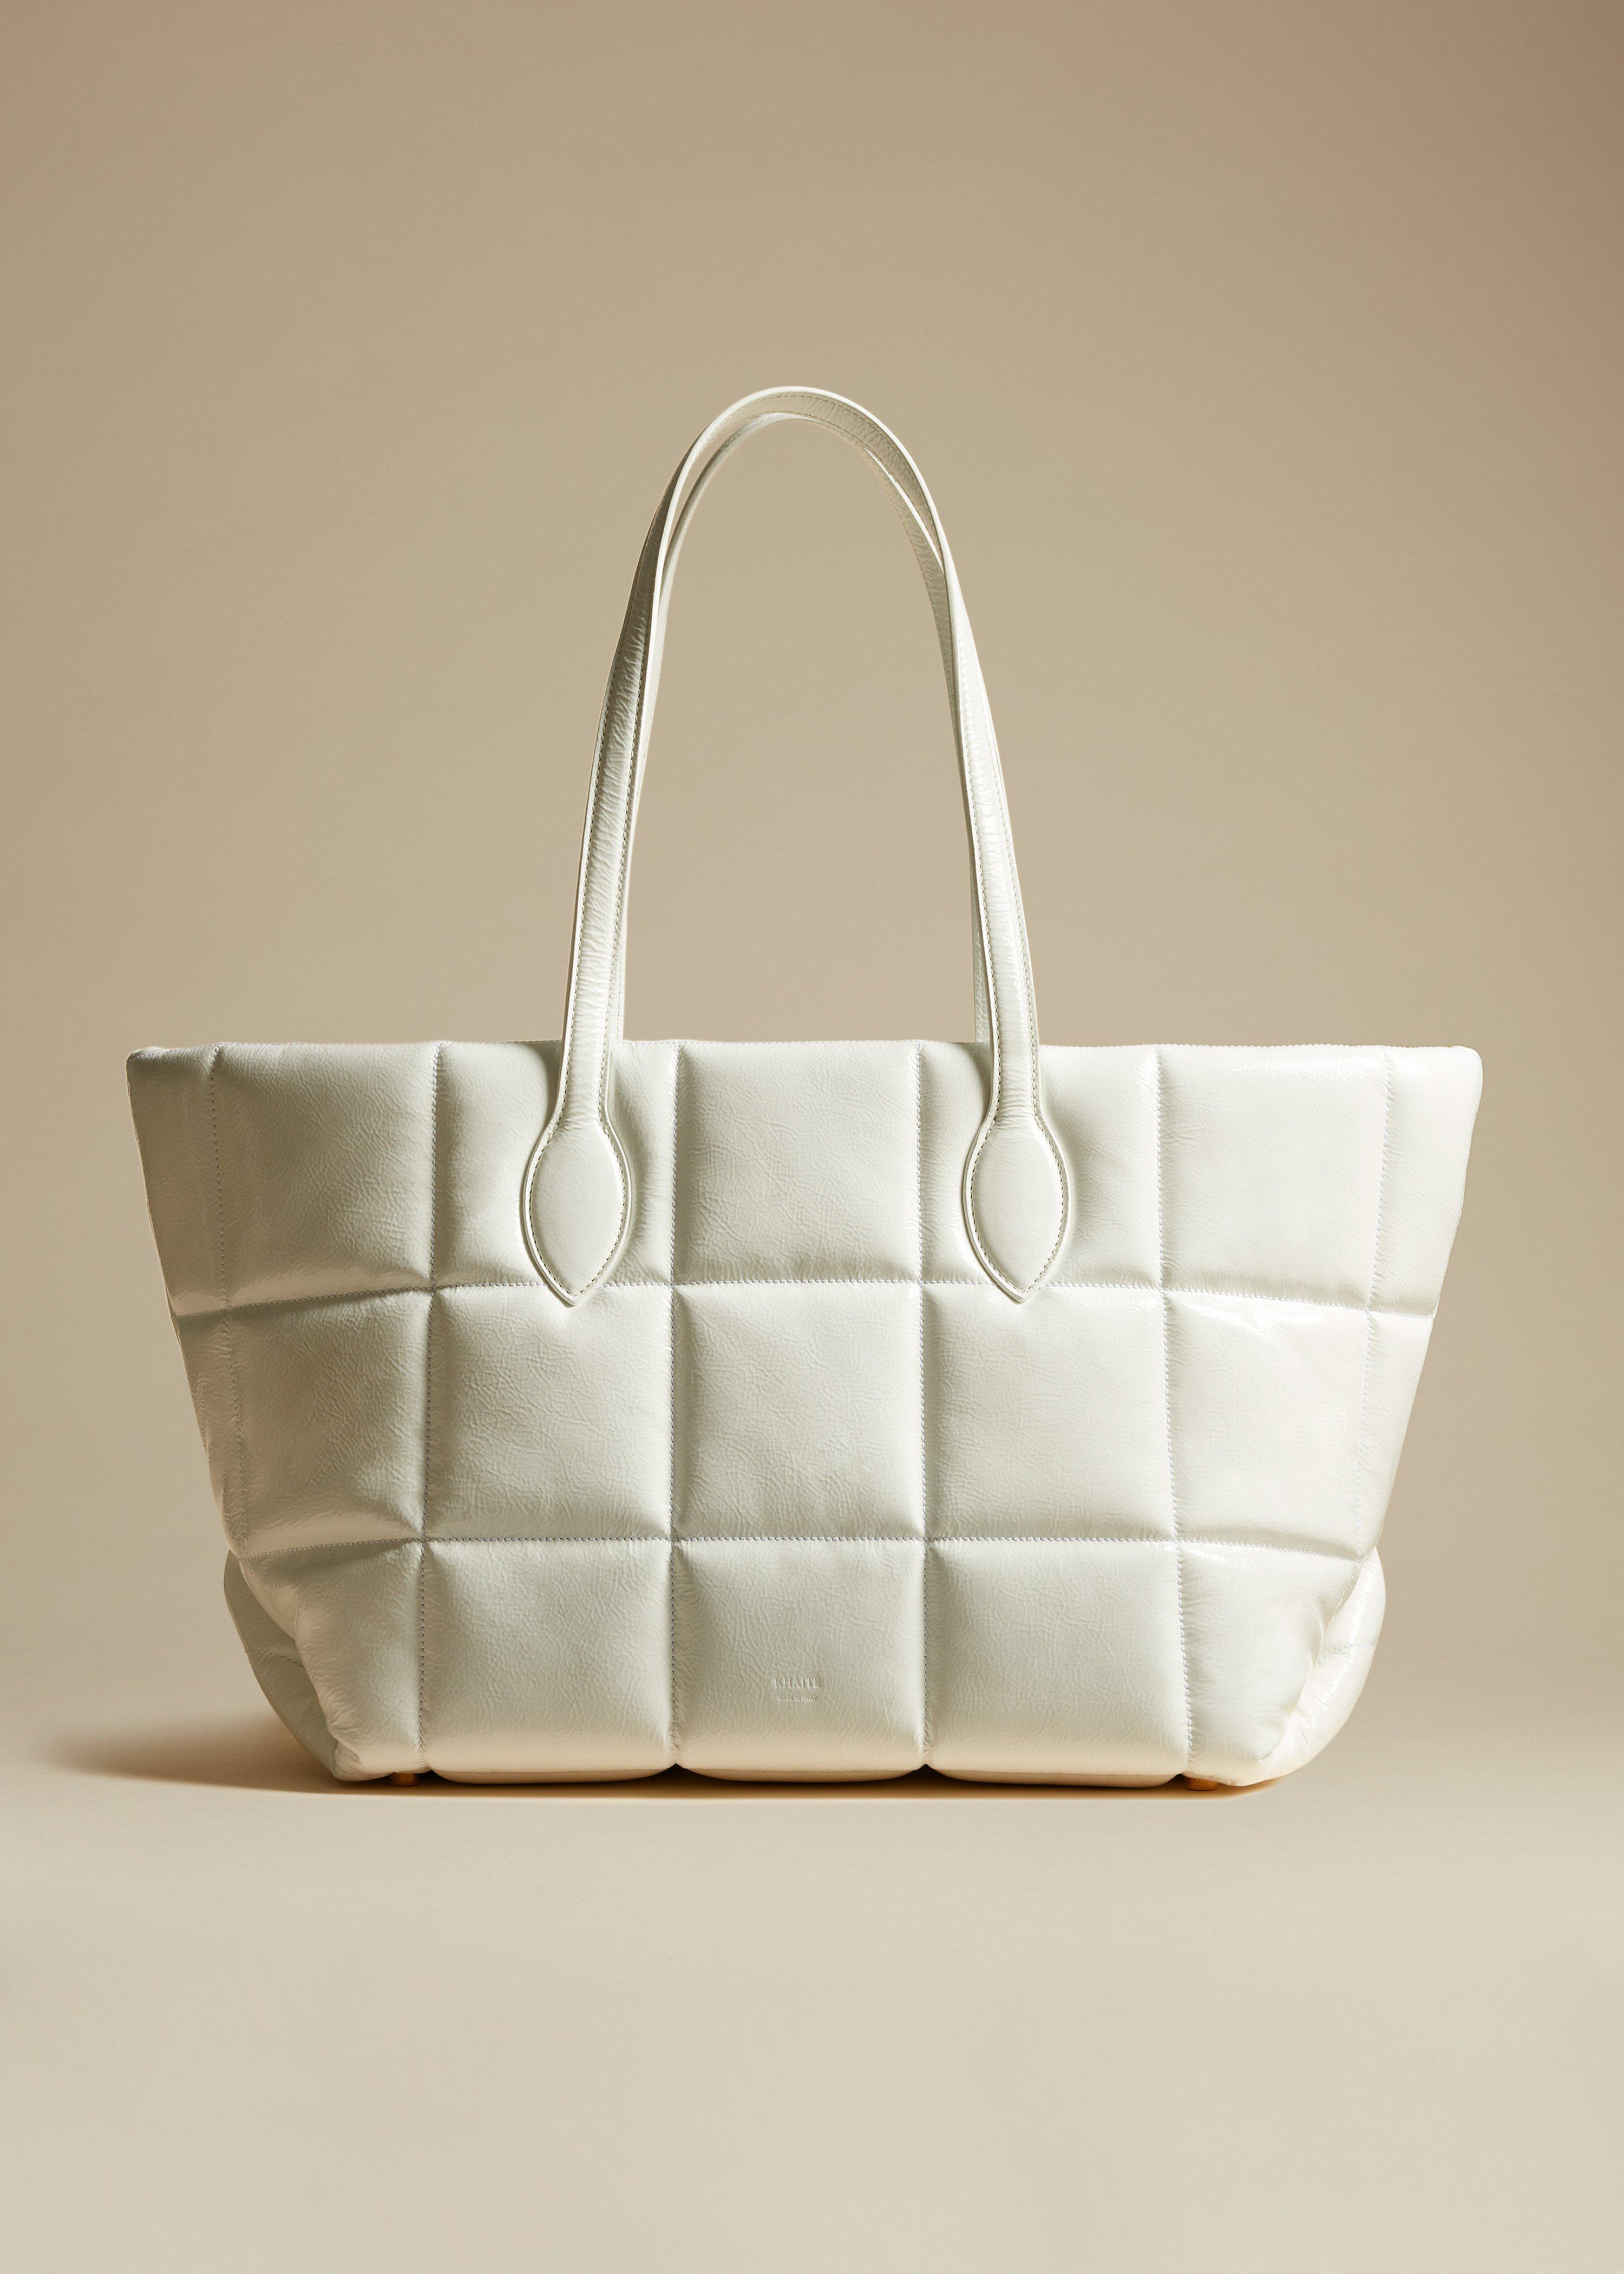 The Florence Quilted Tote in White Patent Leather